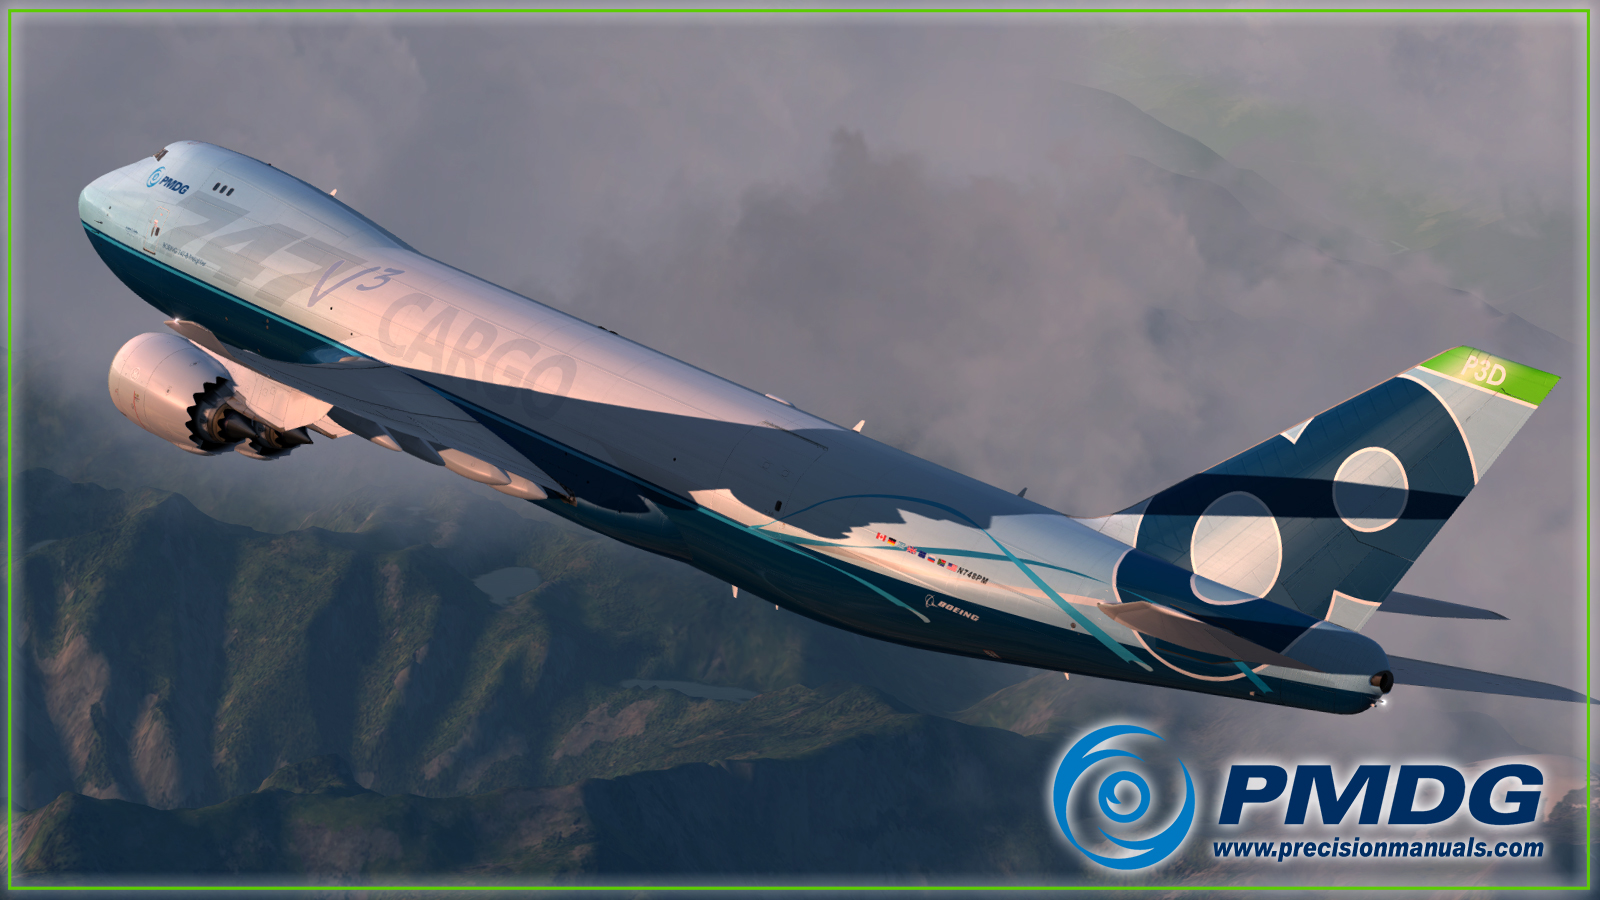 PMDG_748F_mountainflying1.jpg